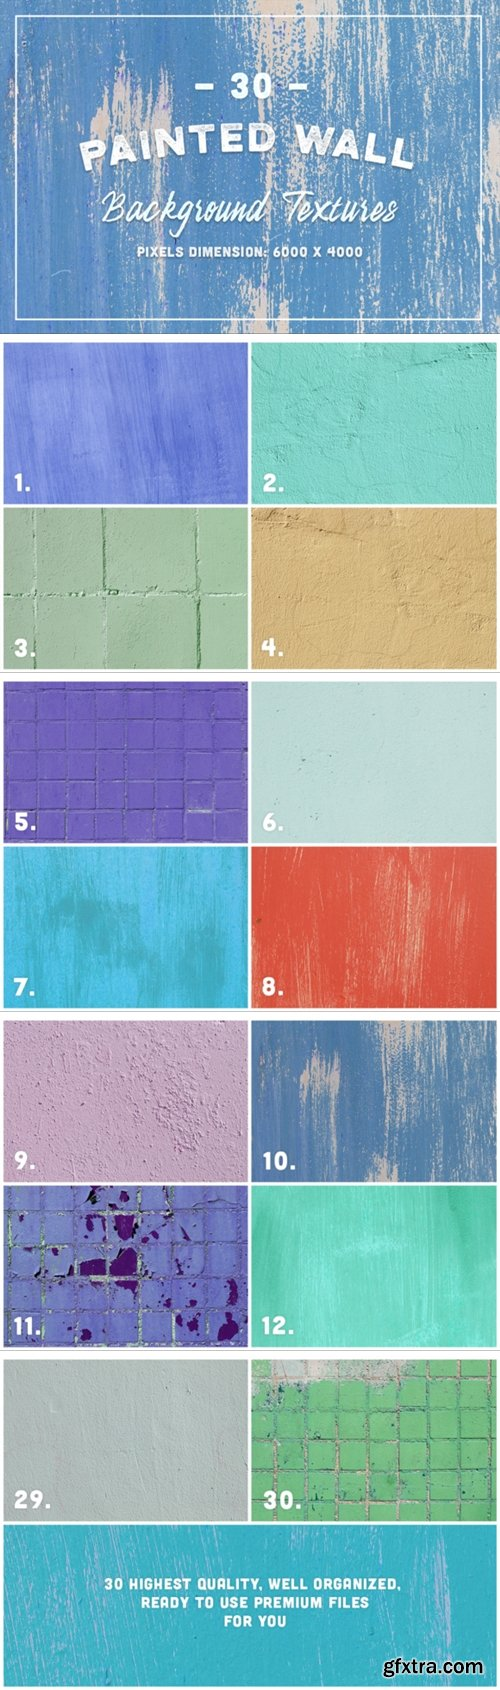 30 Painted Wall Background Textures 465565